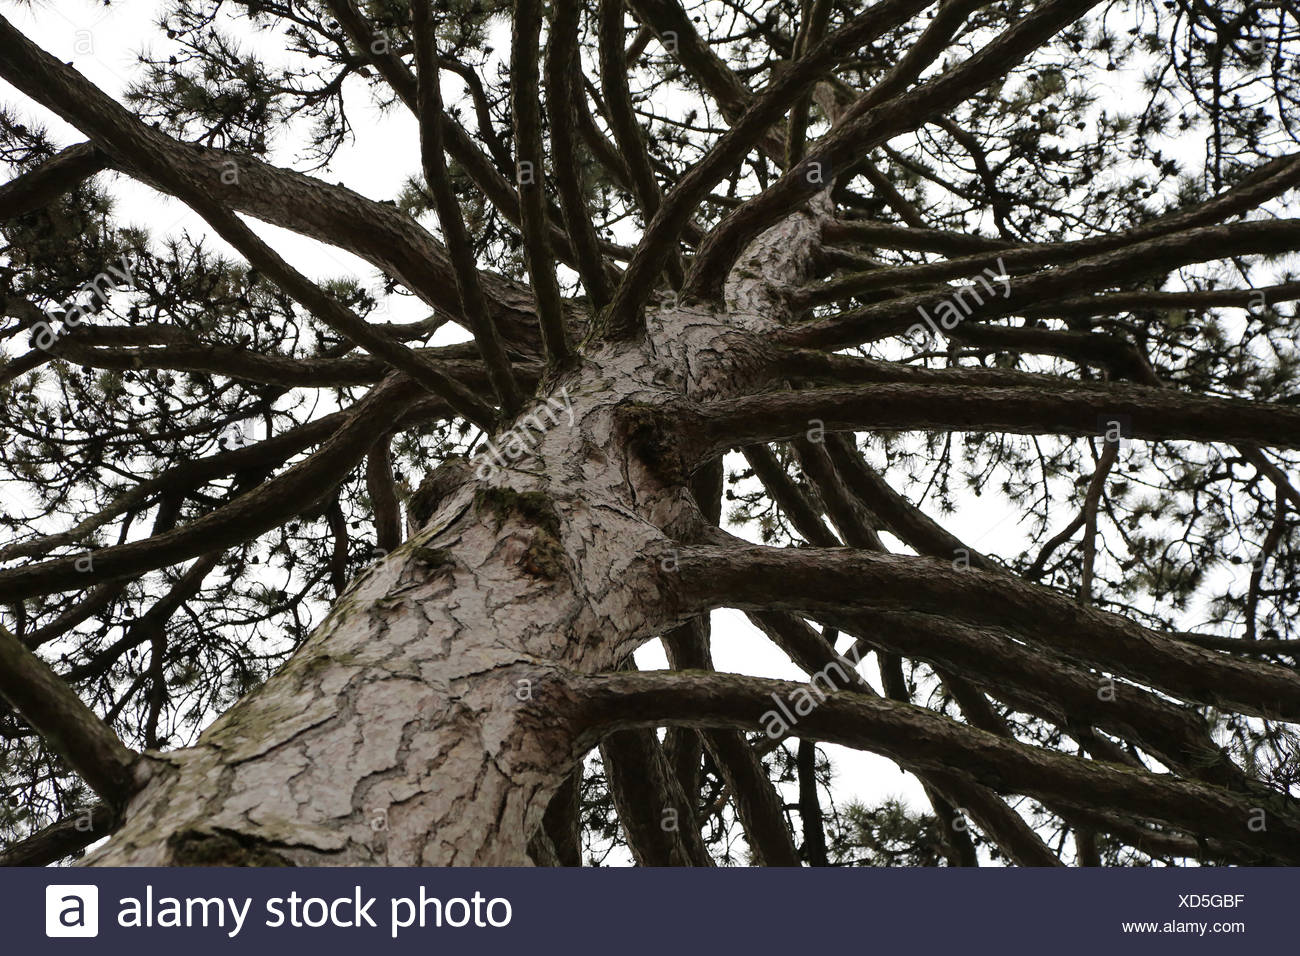 Pine tree with trank, branches and bark - Stock Image